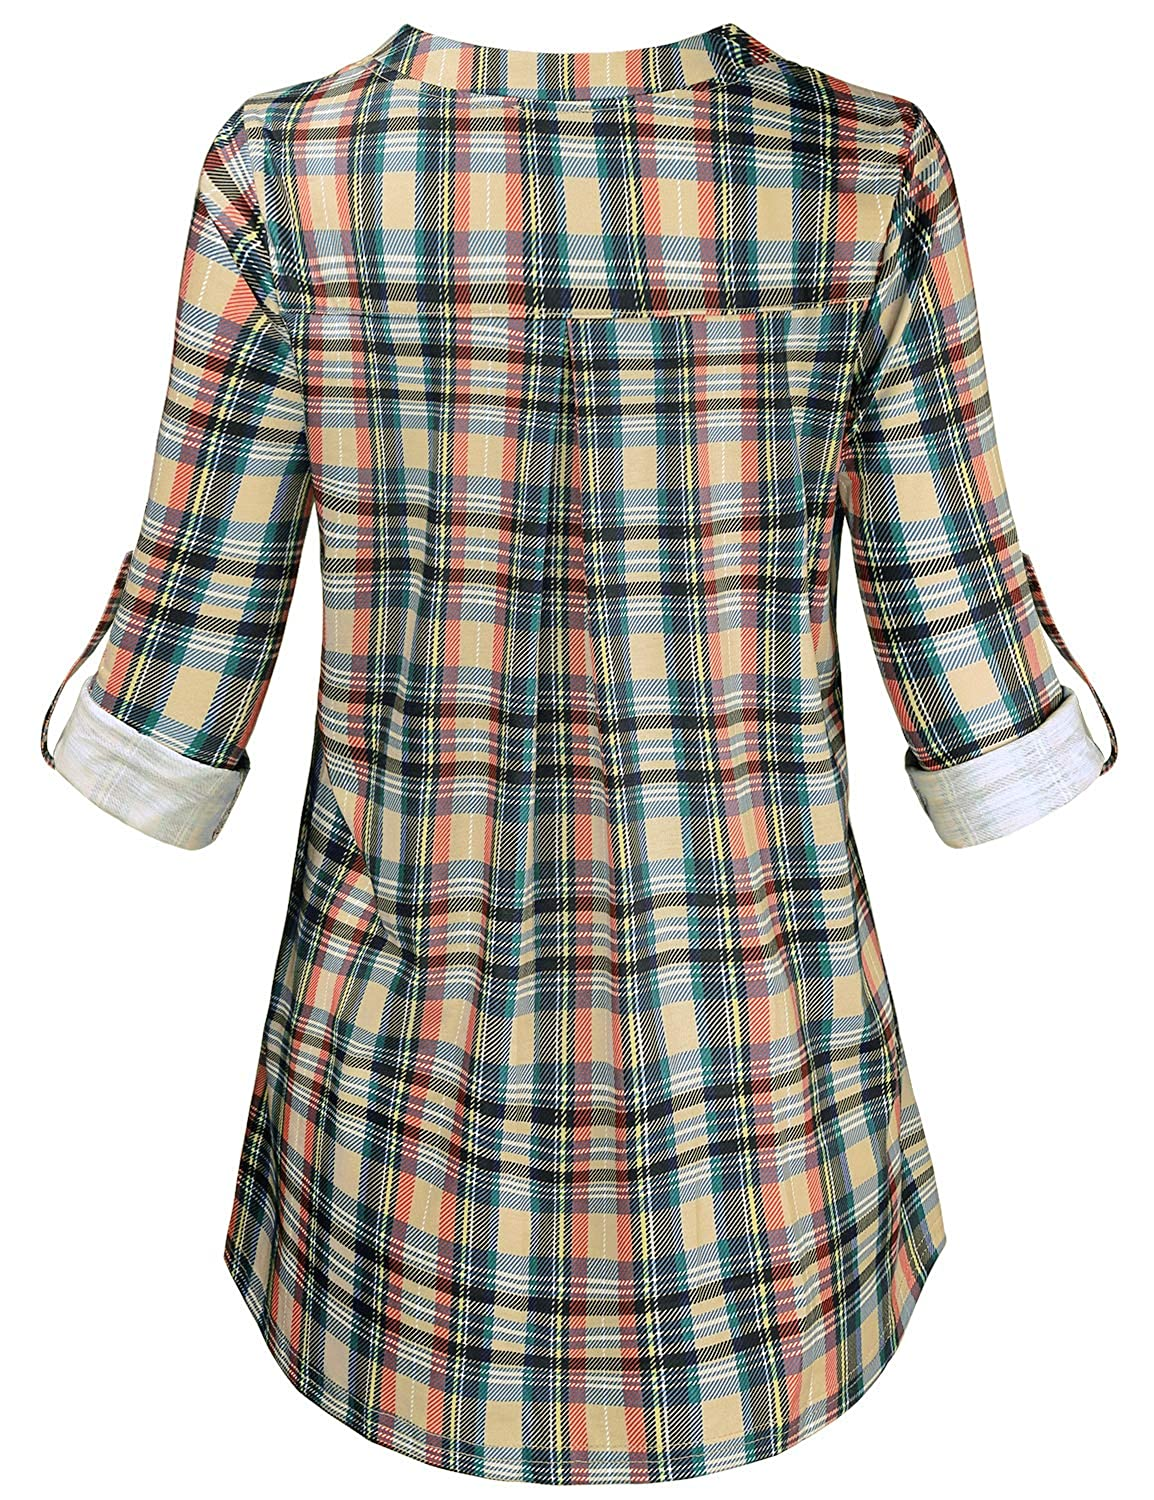 8cd0fa2df5e Baikea Women s 3 4 Rolled Sleeve Zipped V Neck Plaid Shirt Casual Tunic  Blouses at Amazon Women s Clothing store